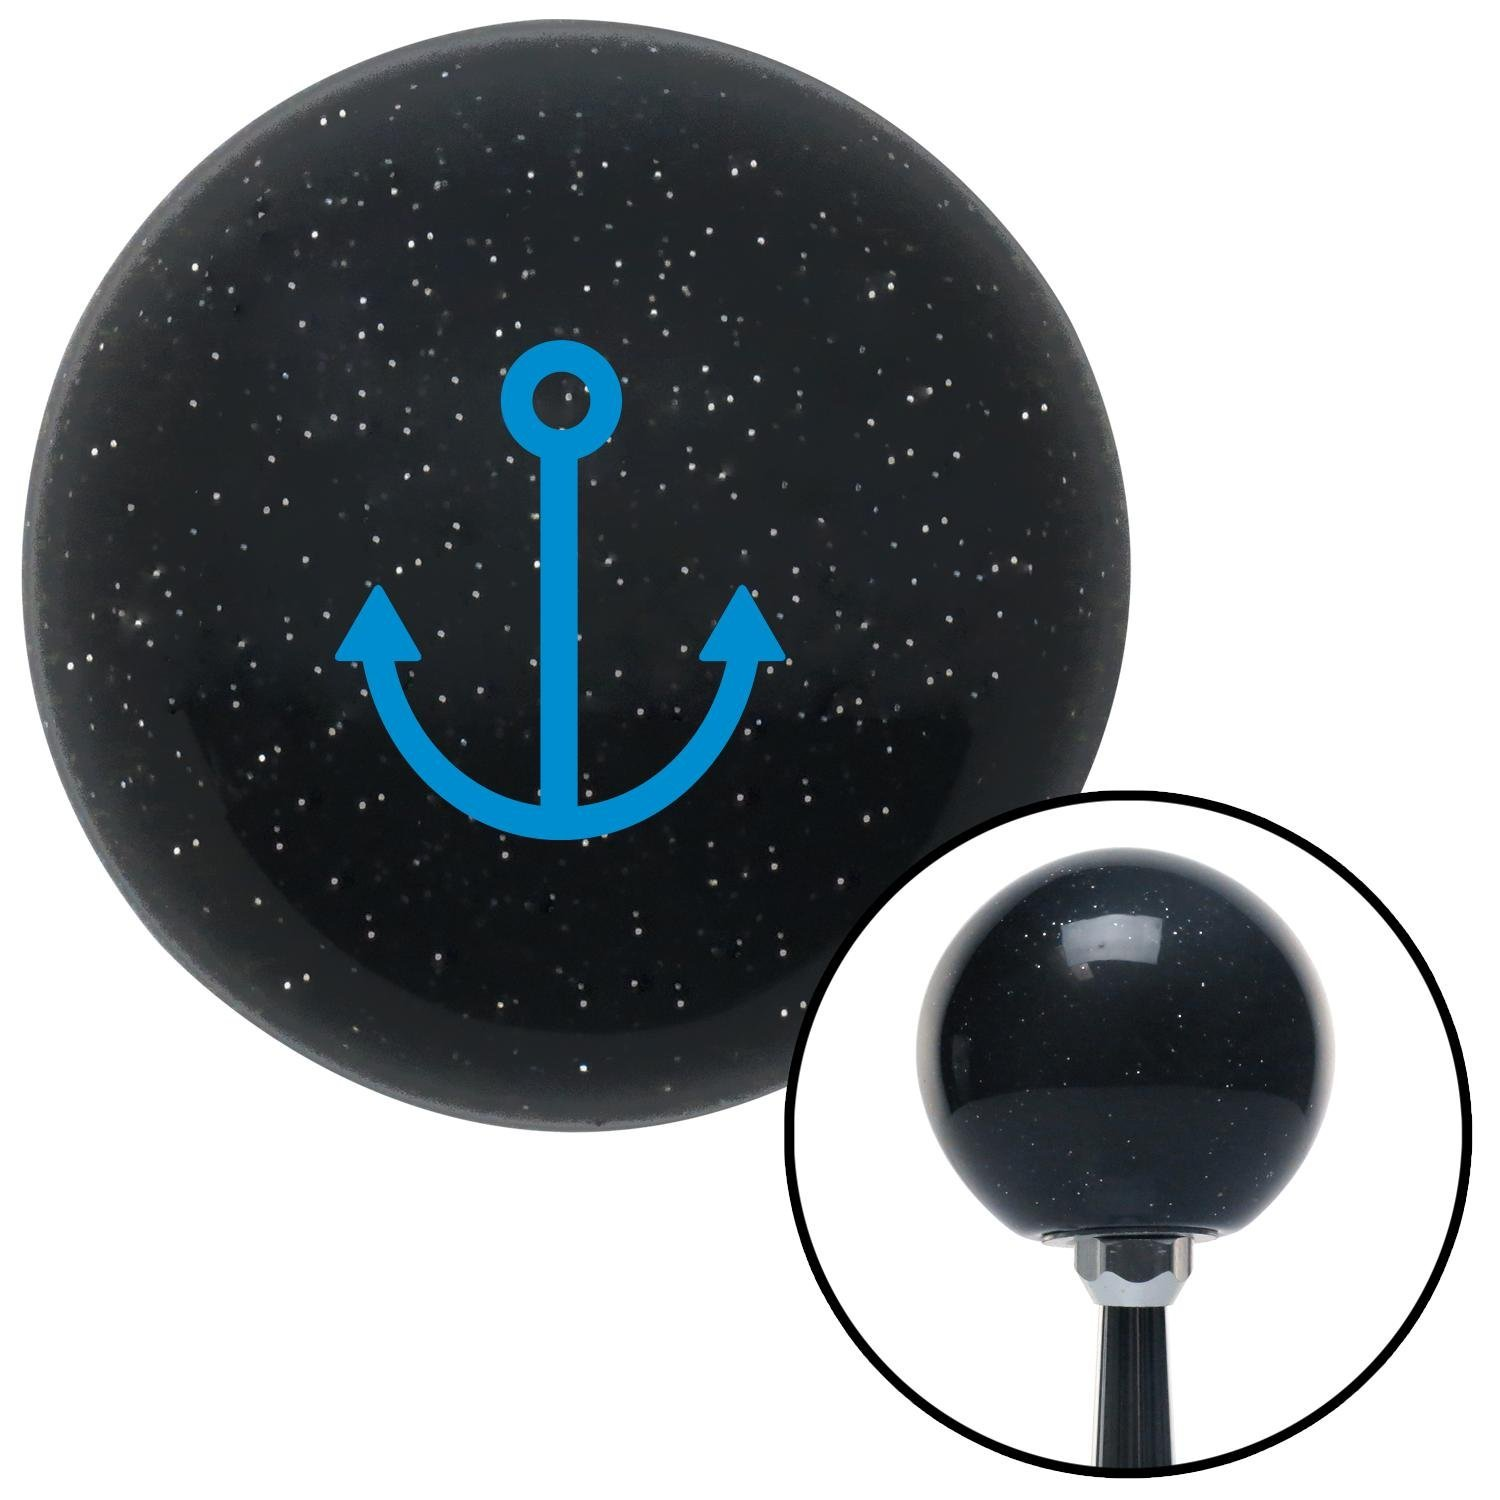 Blue Anchor Design American Shifter 72670 Black Metal Flake Shift Knob with M16 x 1.5 Insert